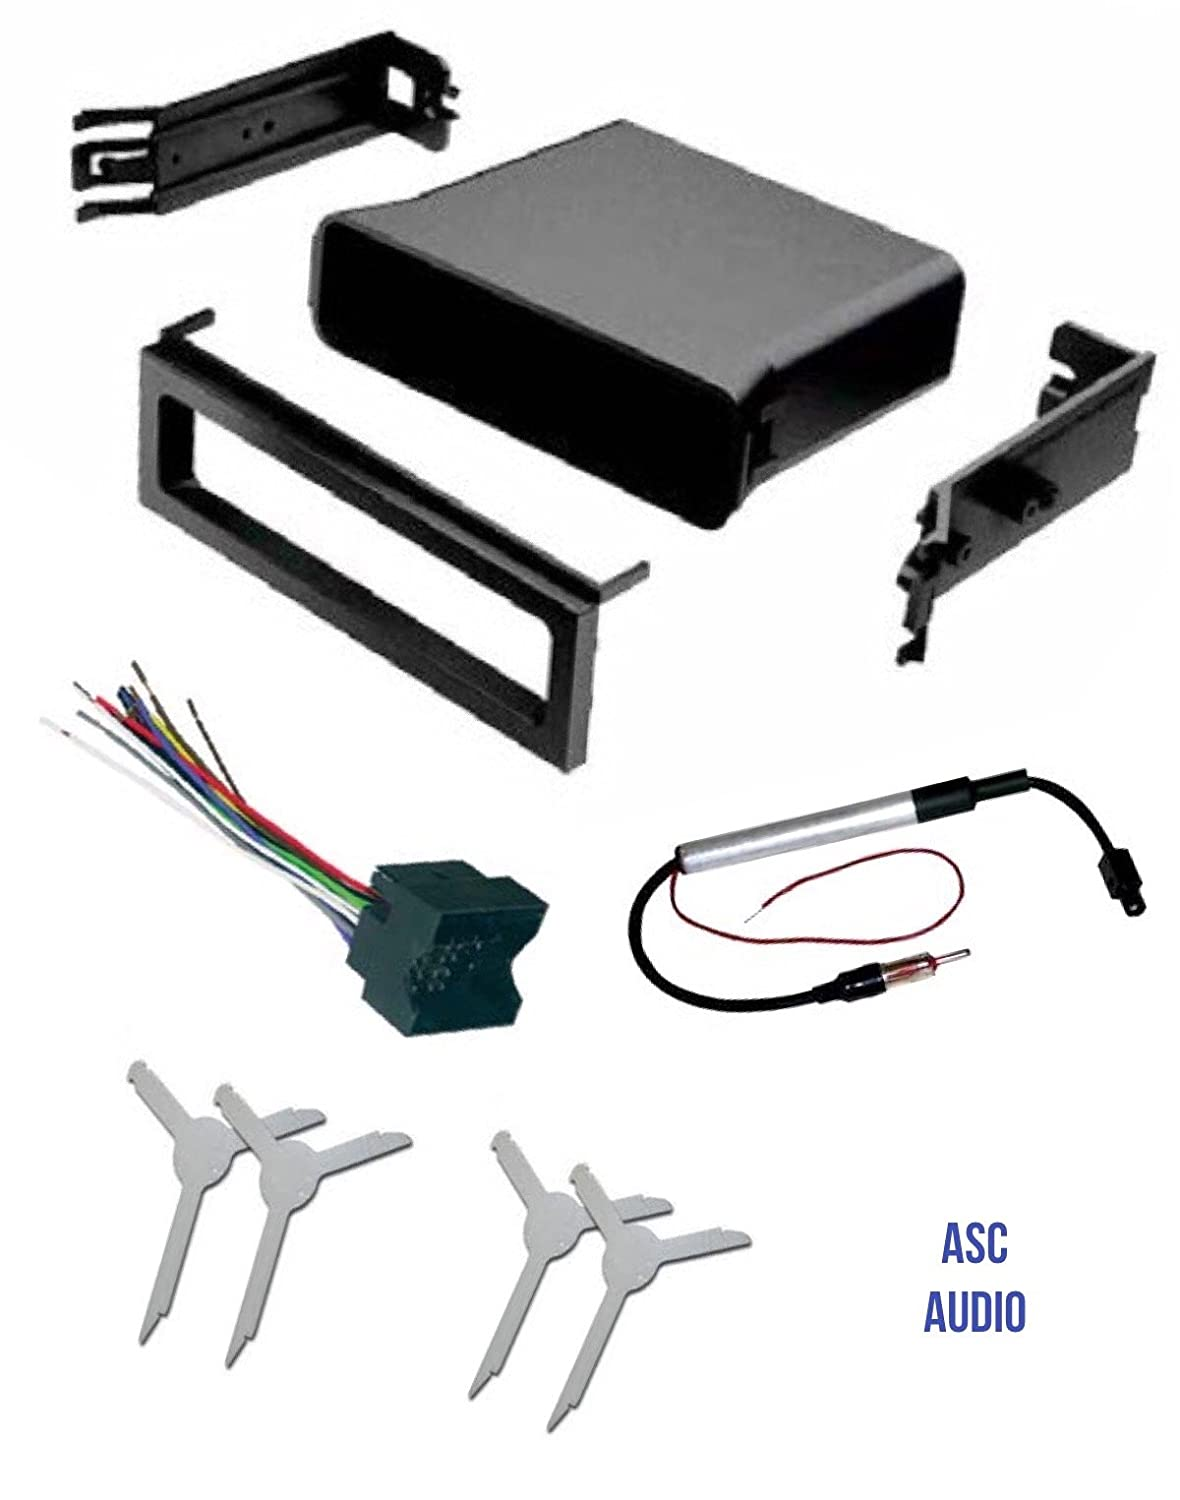 ASC Audio Car Stereo Dash Pocket Kit Antenna Adapter and Radio Removal Tool for installing a Single Din Radio for select VW Volkswagen Vehicles Wire Harness Compatible Vehicles Listed Below Other